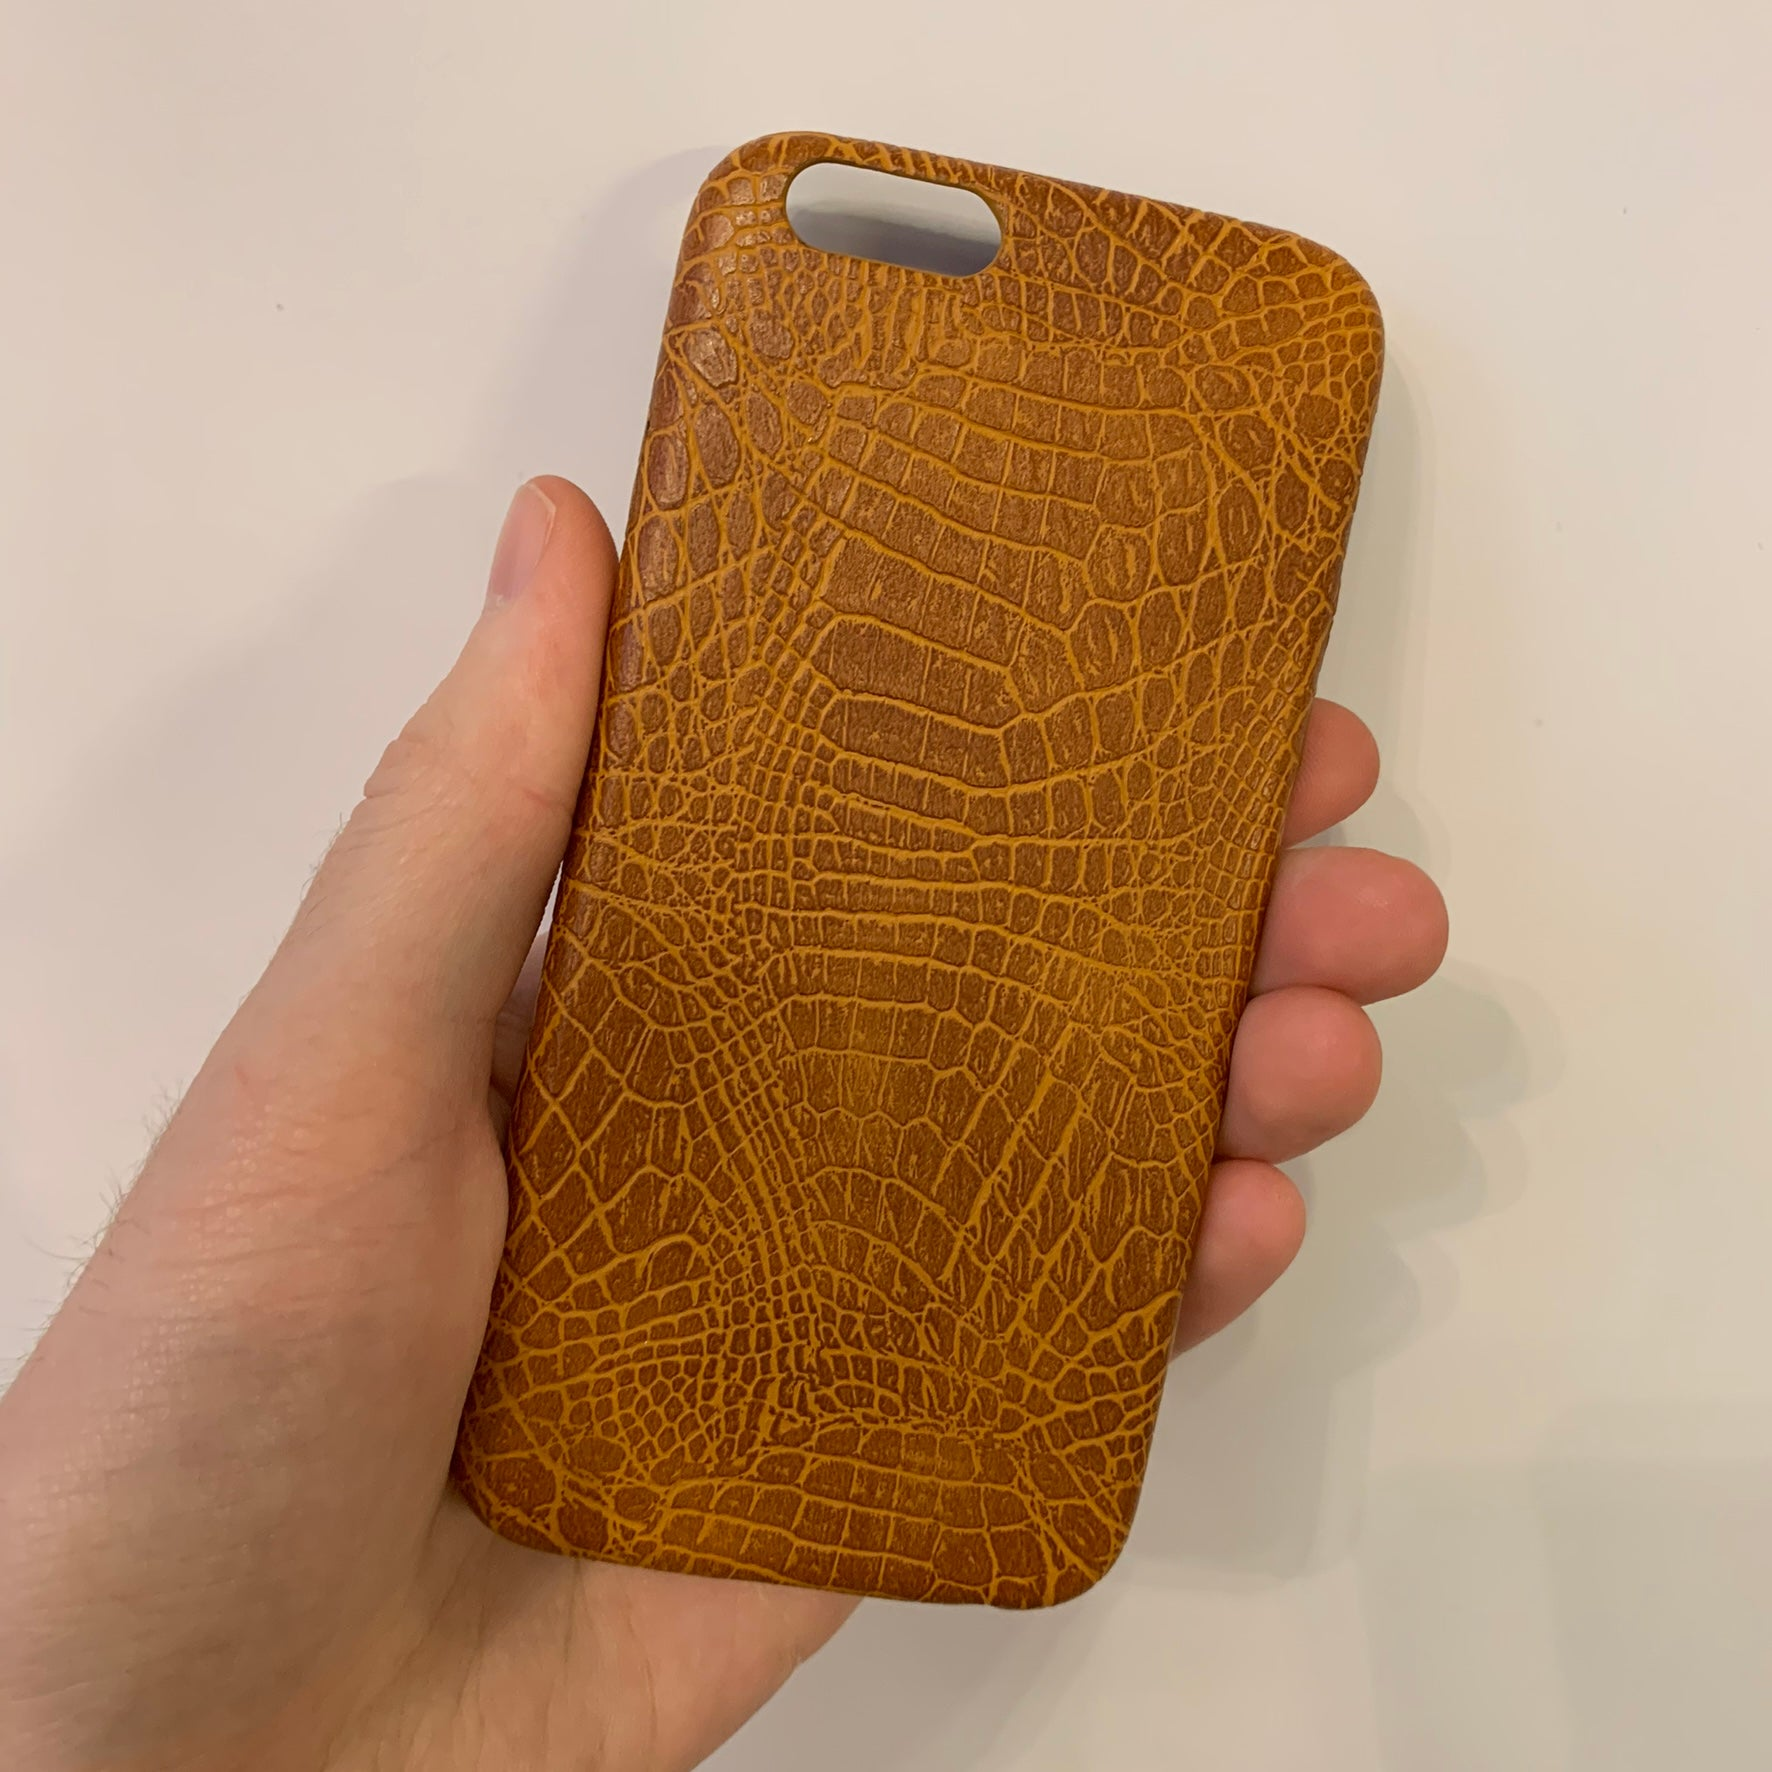 iPhone 6/6s Textured Case